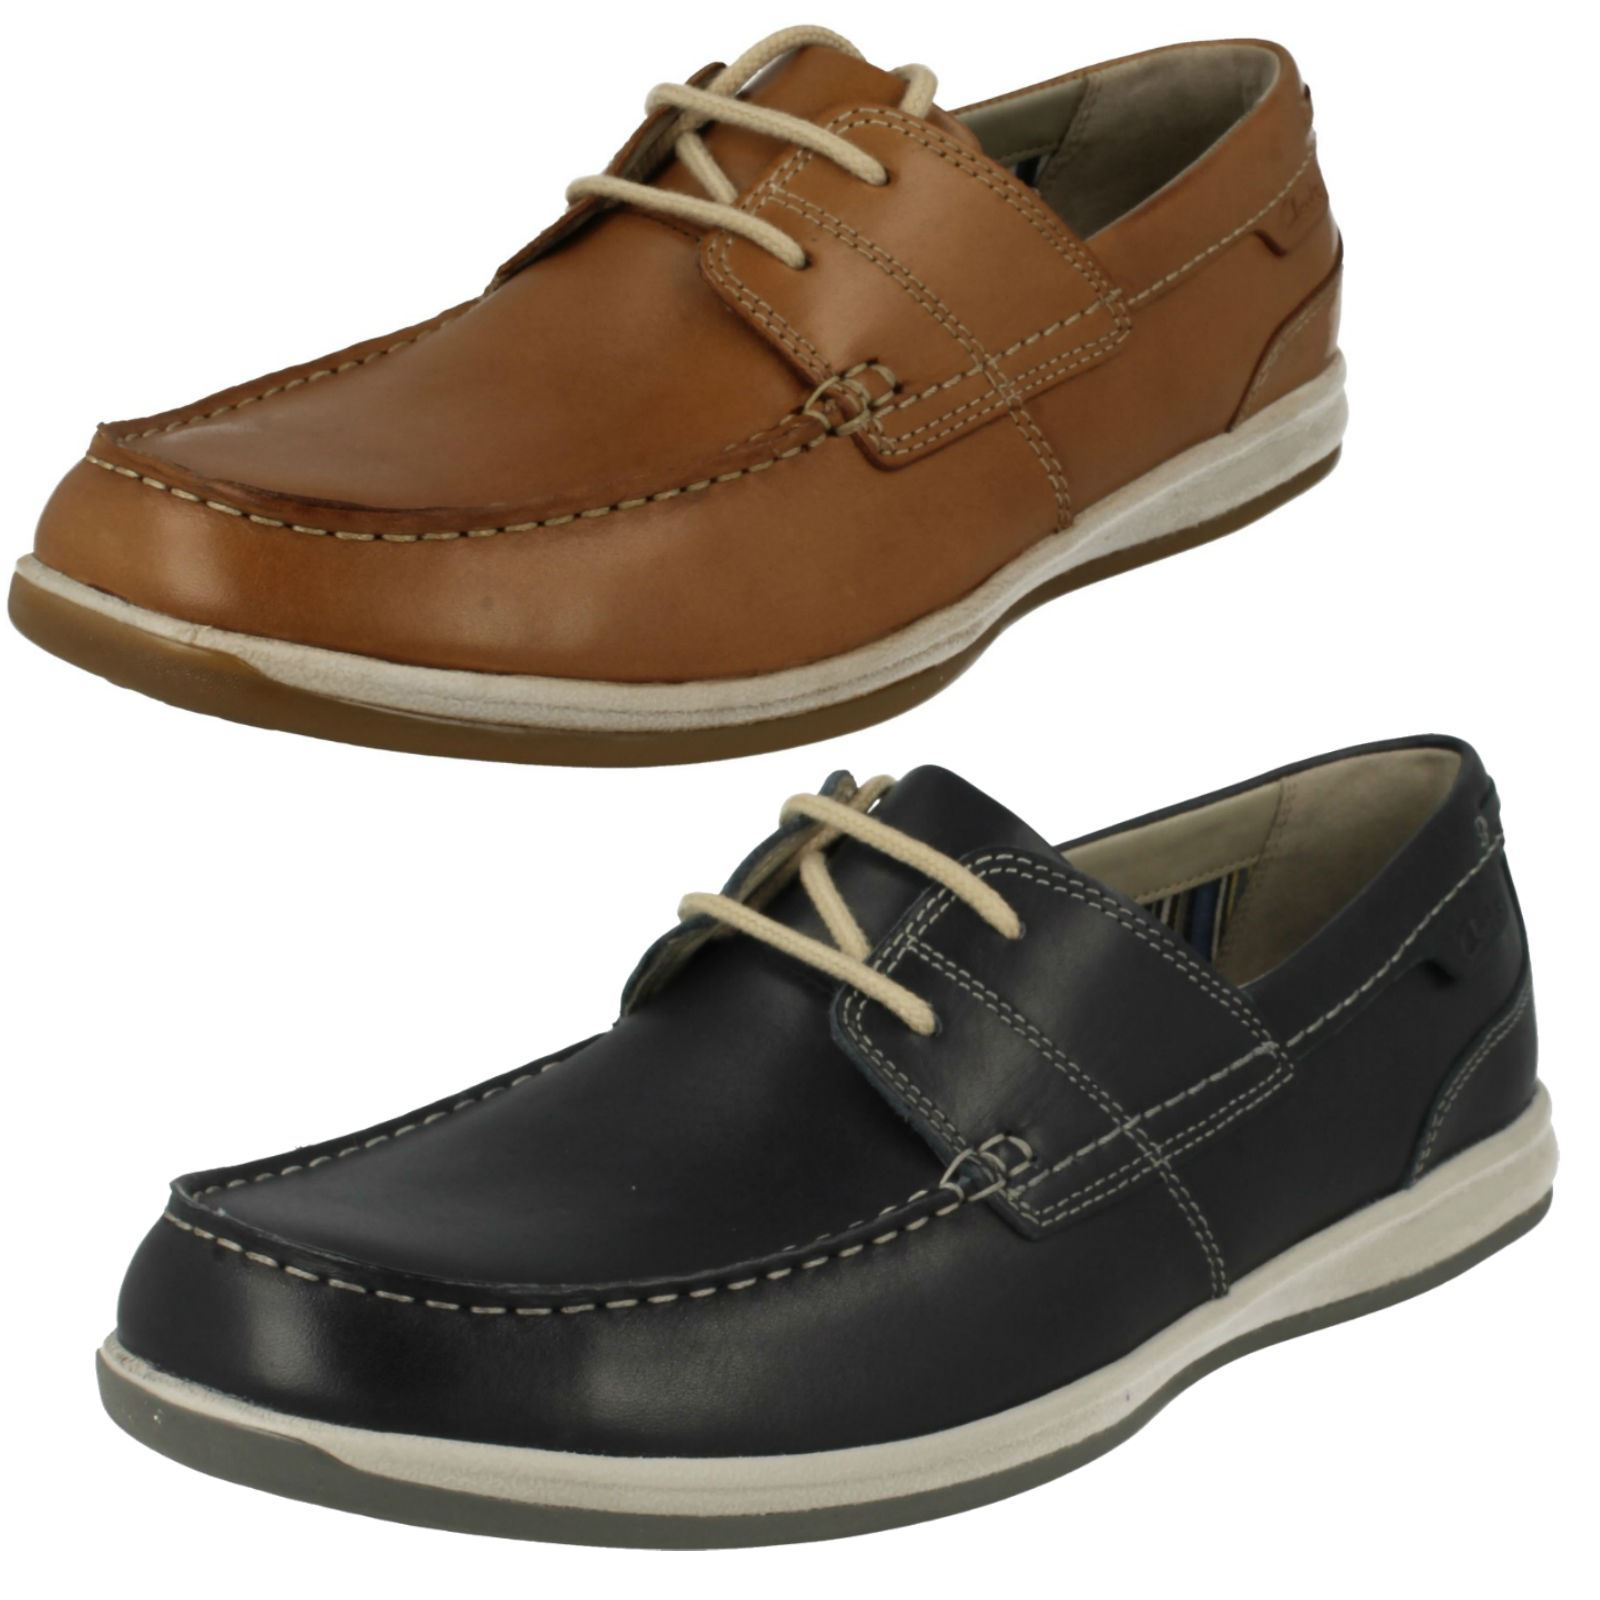 Mens Clarks Moccasin Style Lace Up shoes Fallston Style